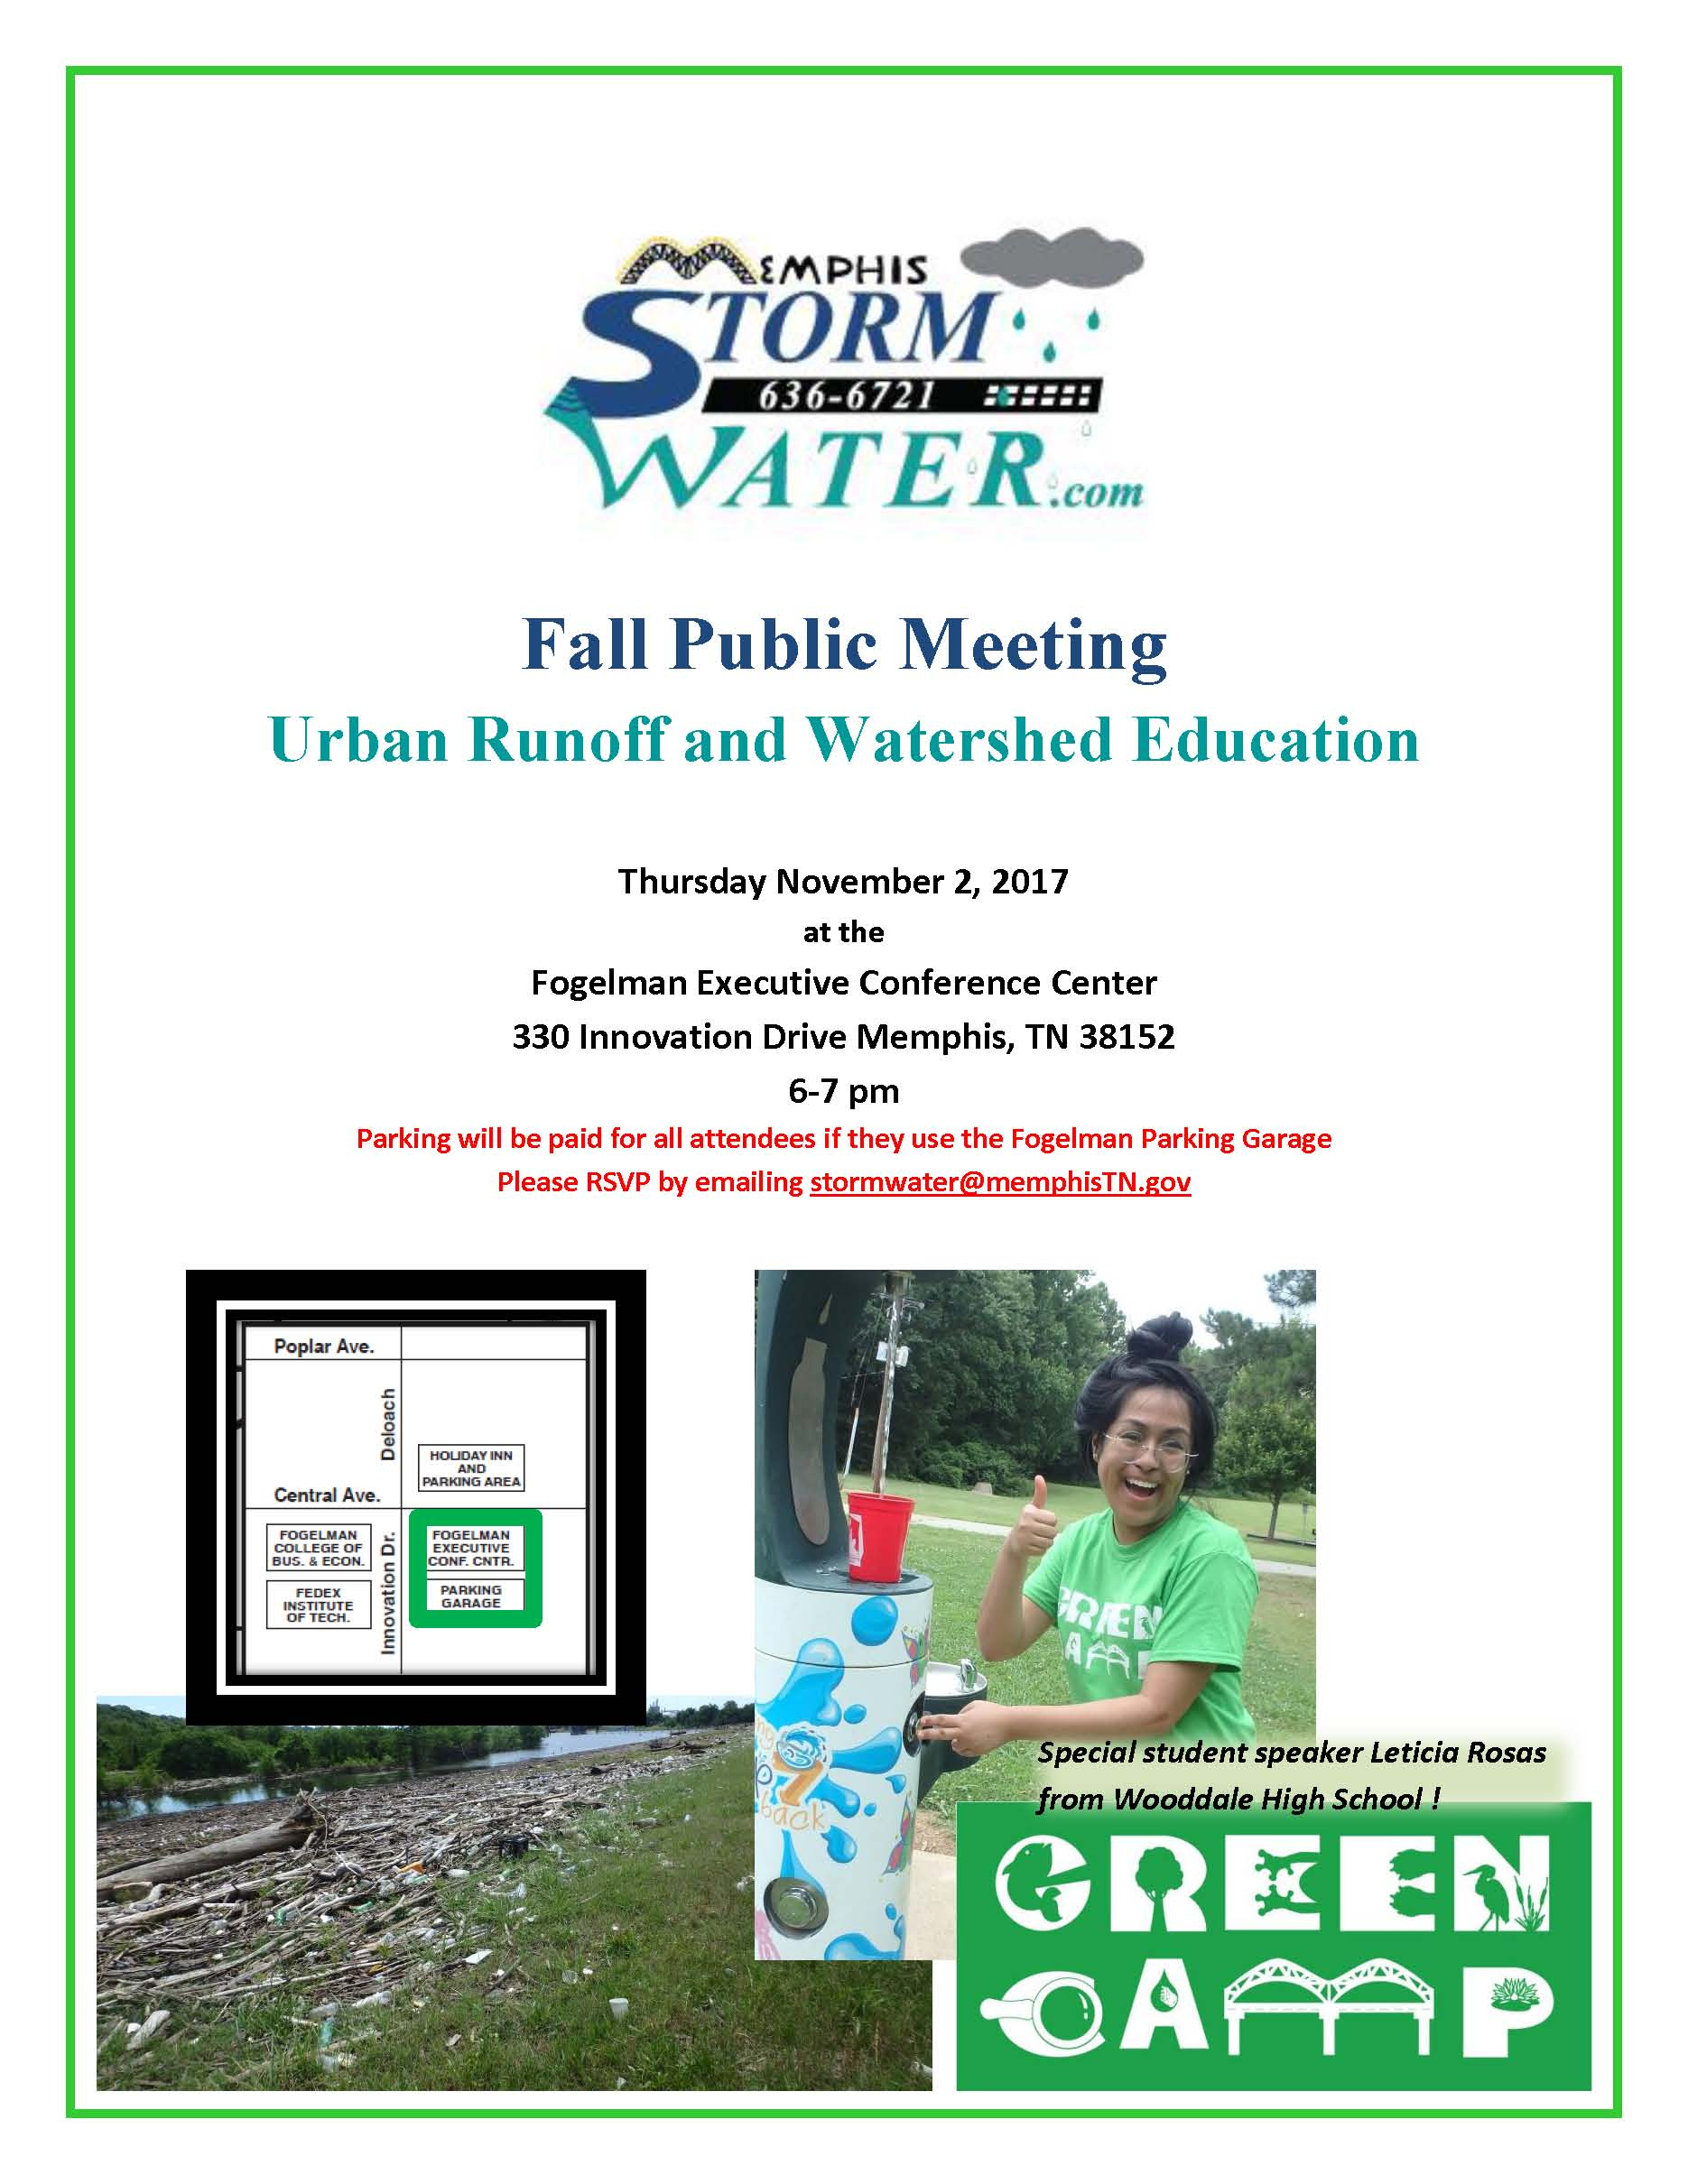 Fall Public Meeting - Urban Runoff and Watershed Education